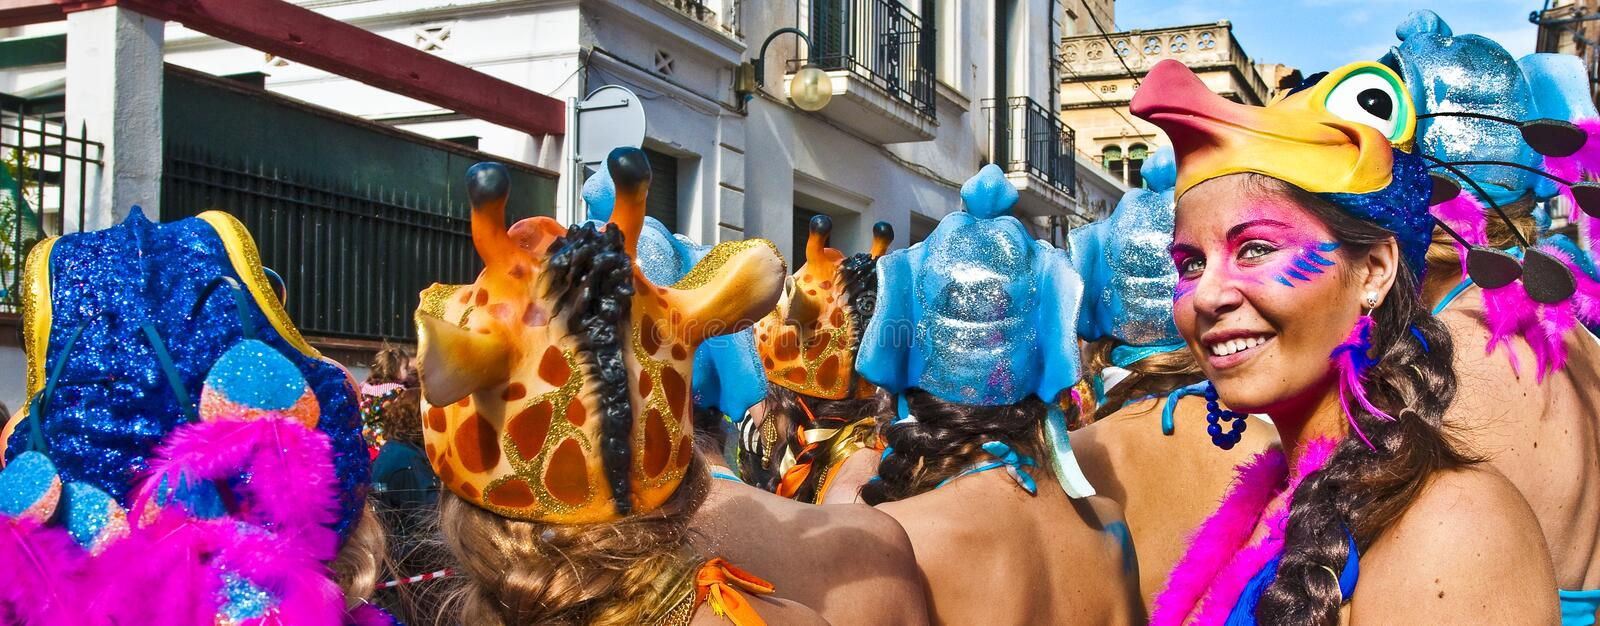 Sitges Carnival 2010 royalty free stock photography